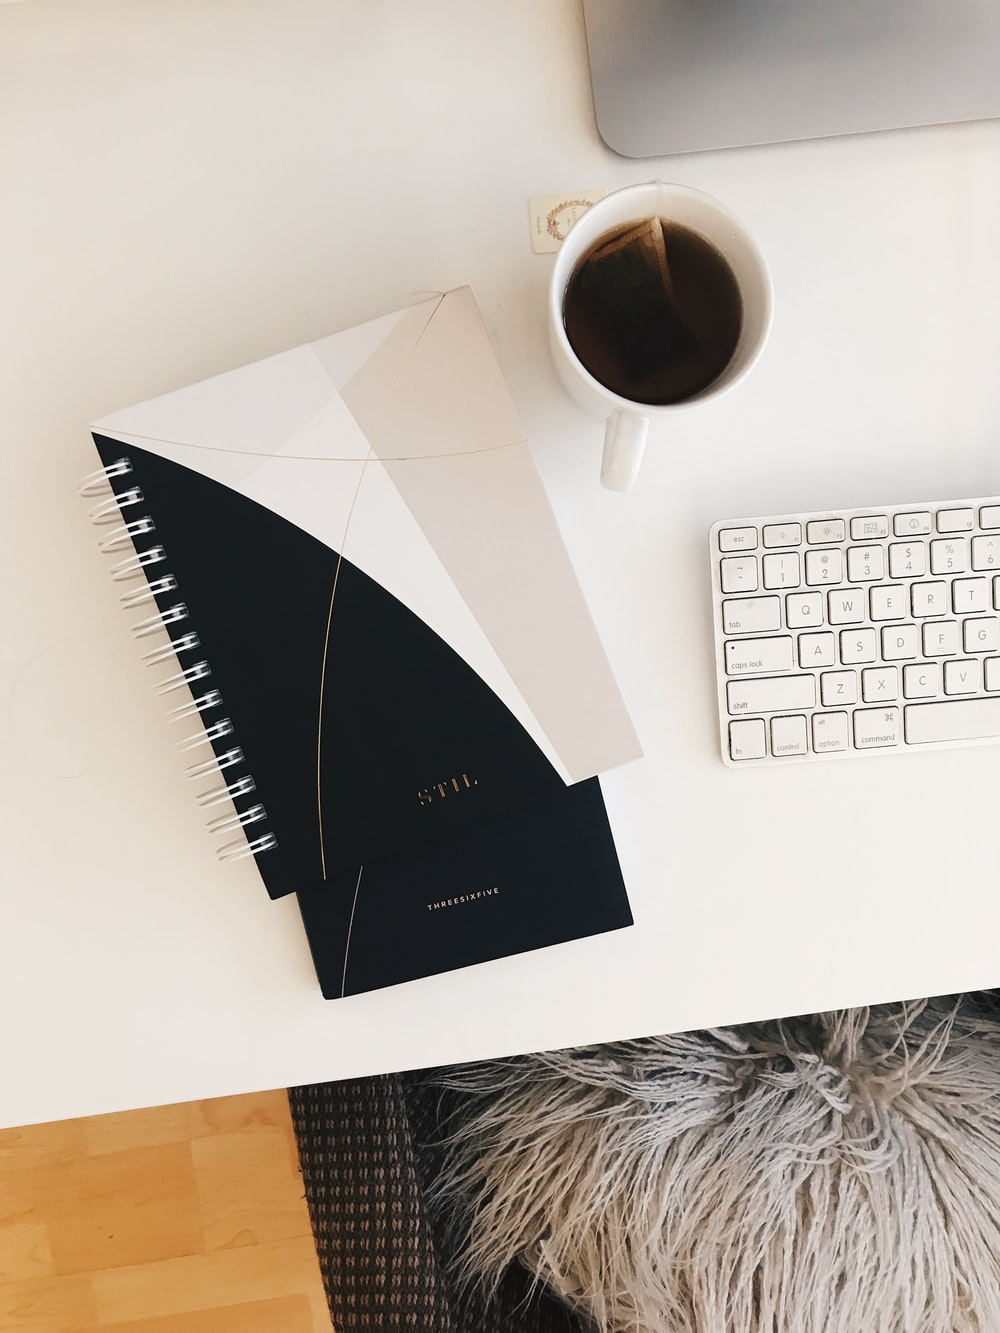 white and black spiral notebook near white teacup filled with black liquid